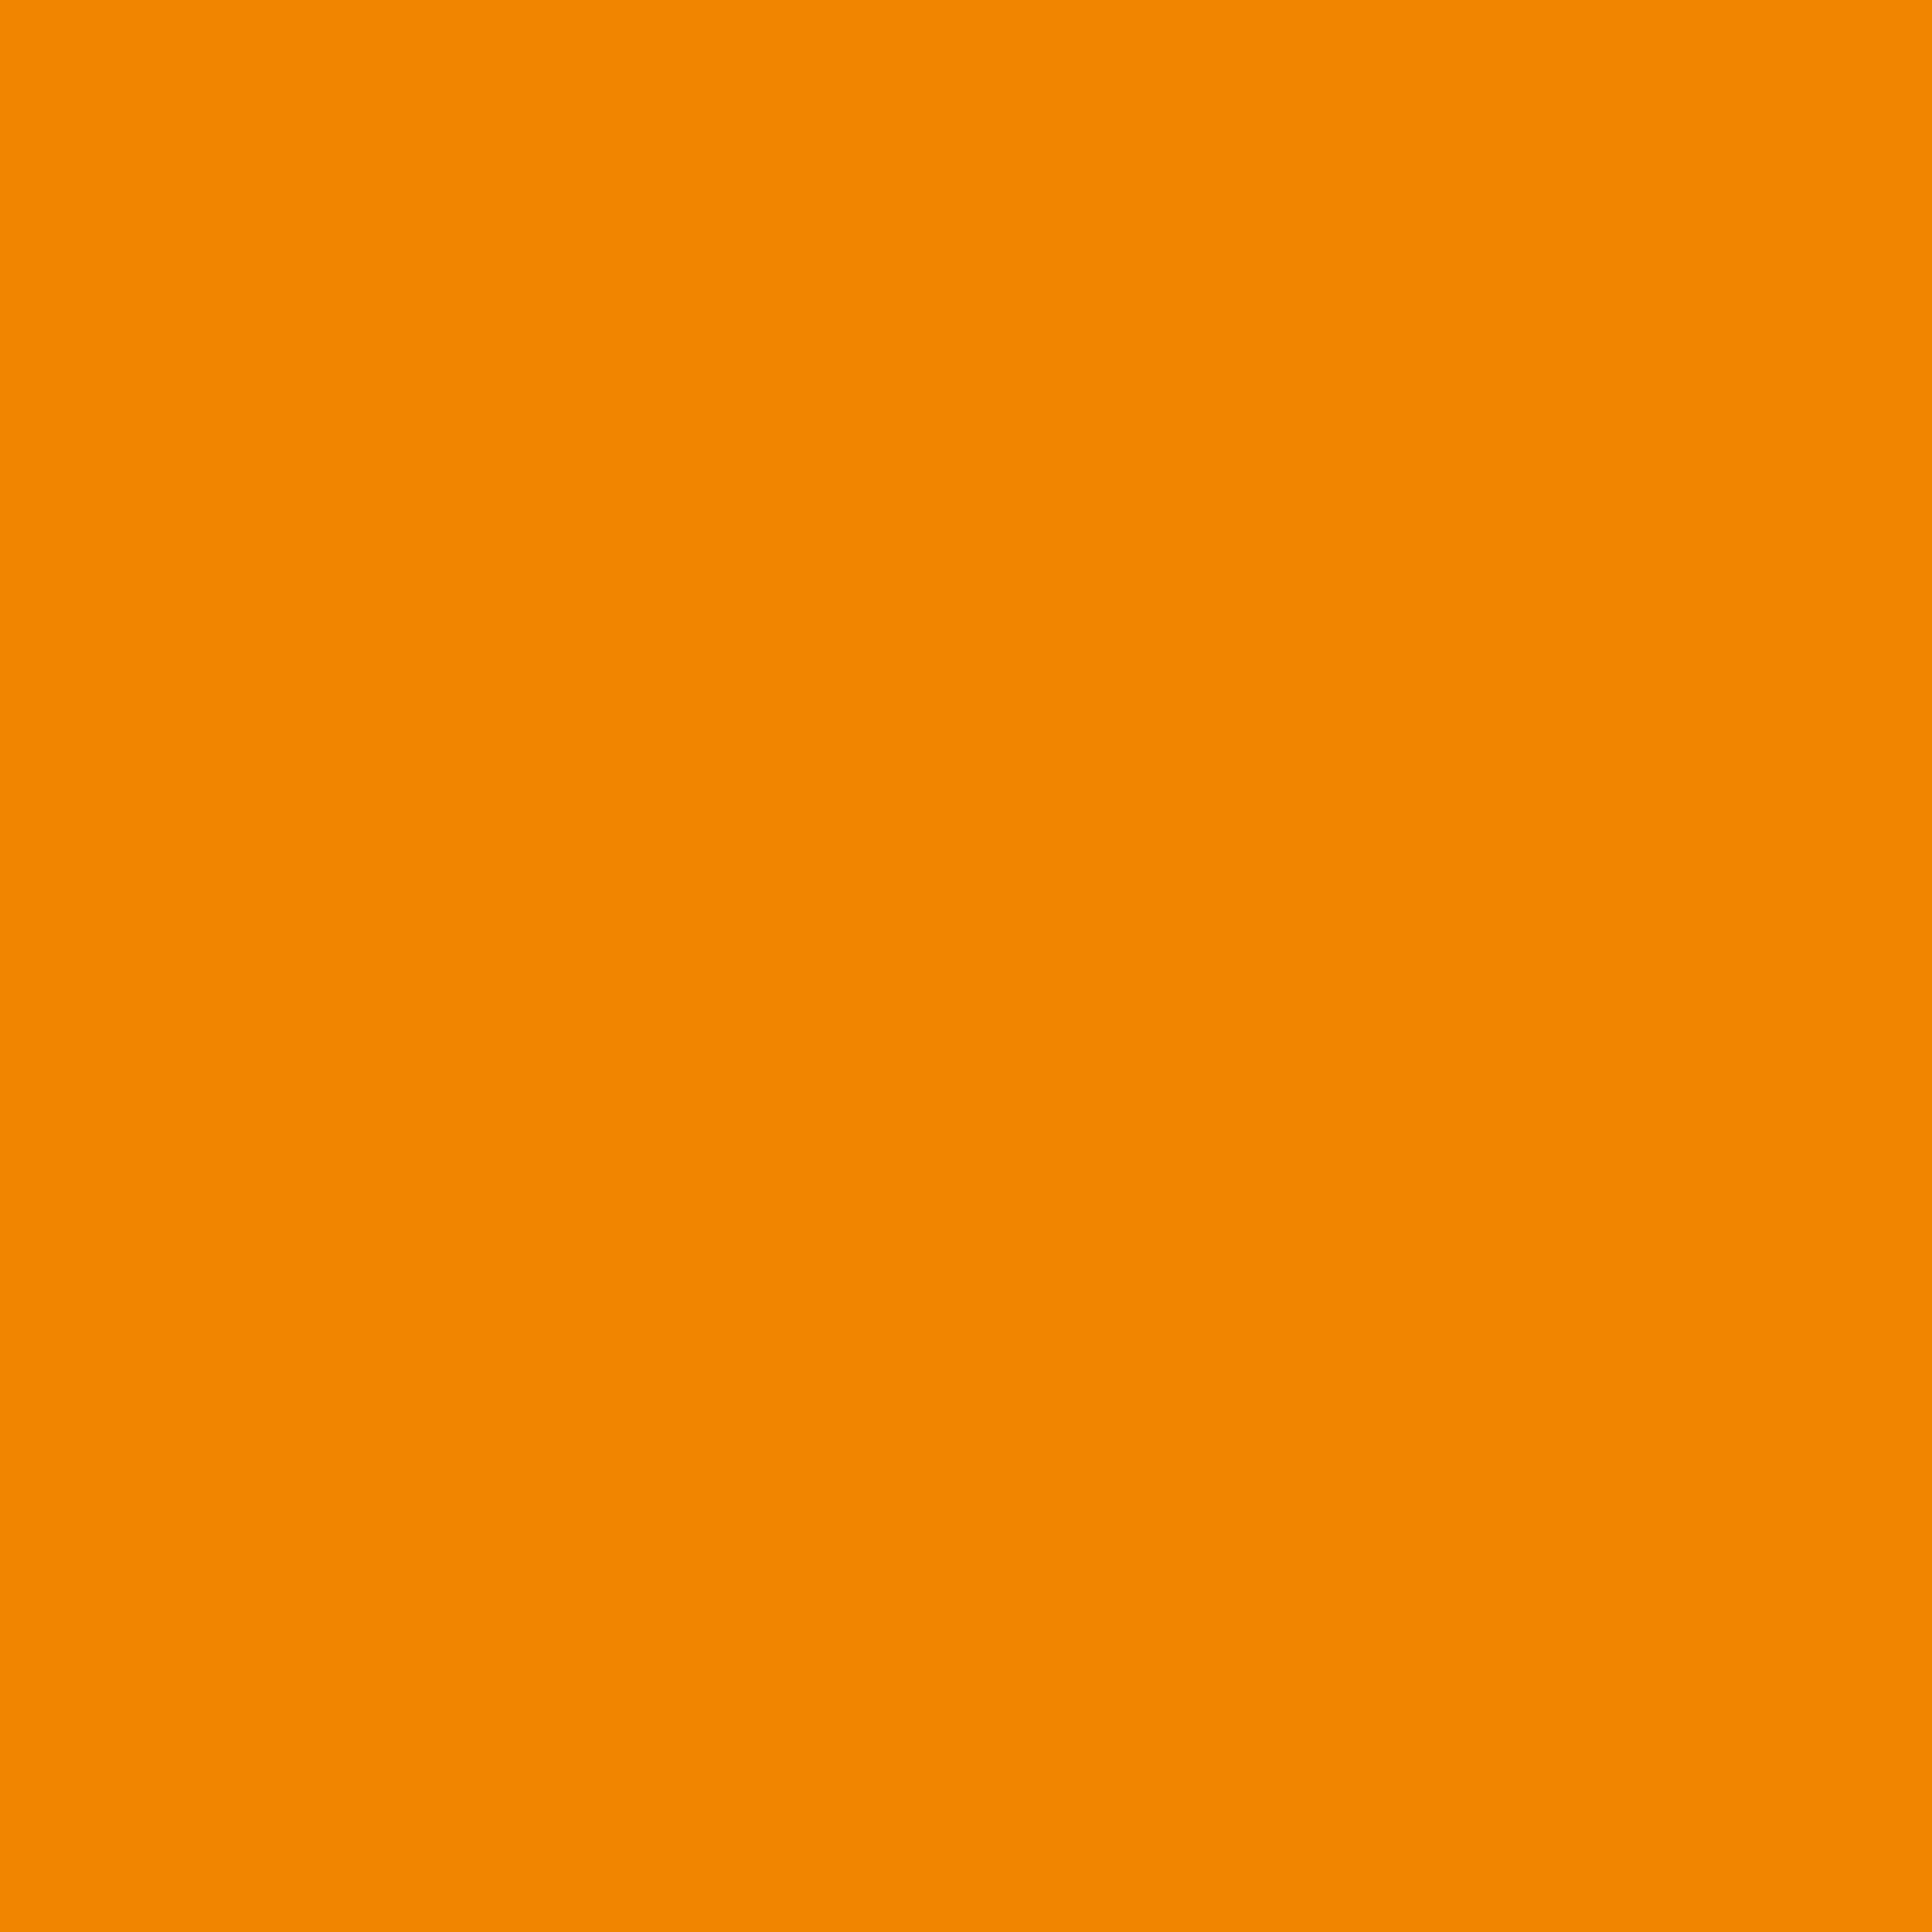 2732x2732 Tangerine Solid Color Background